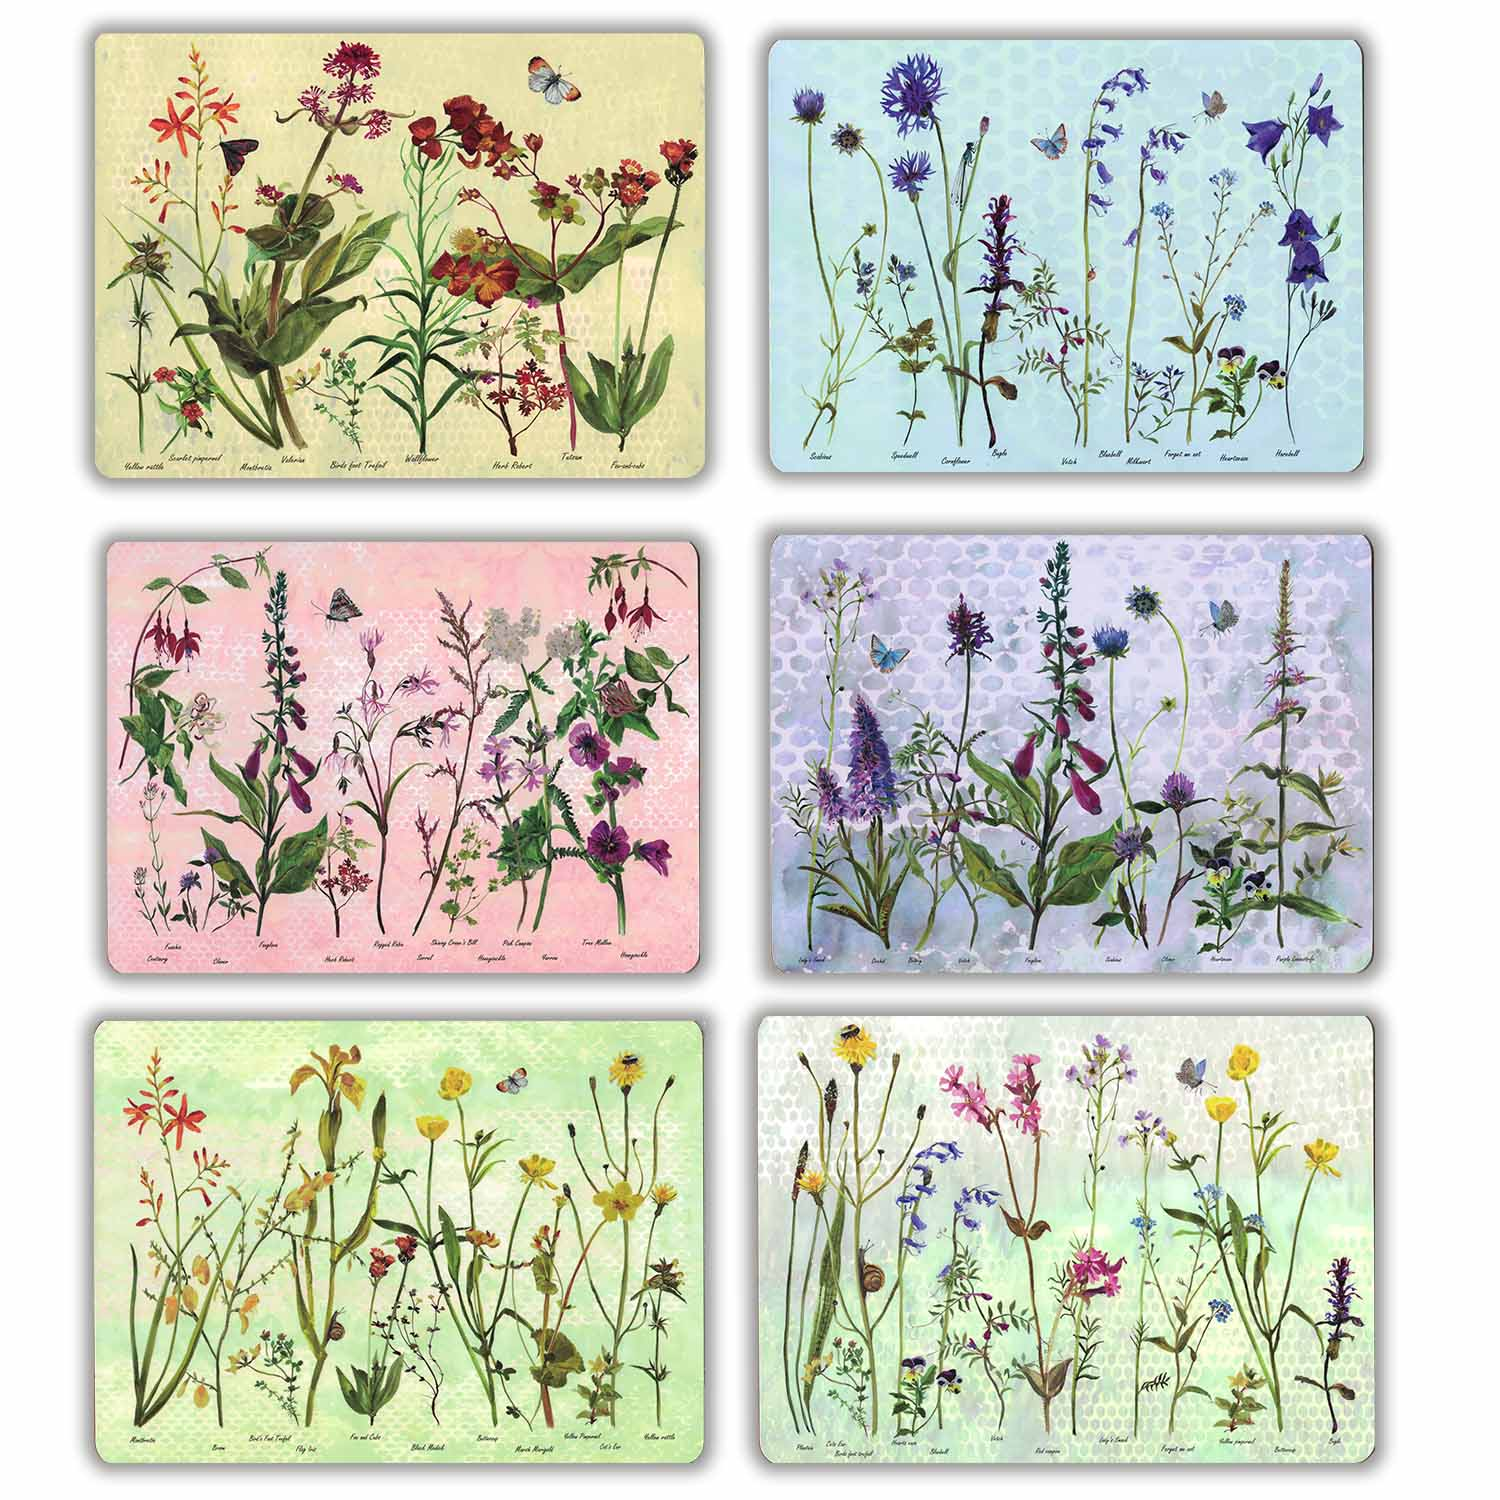 Wildflower Placemats (Set of 6) - Annabel Langrish